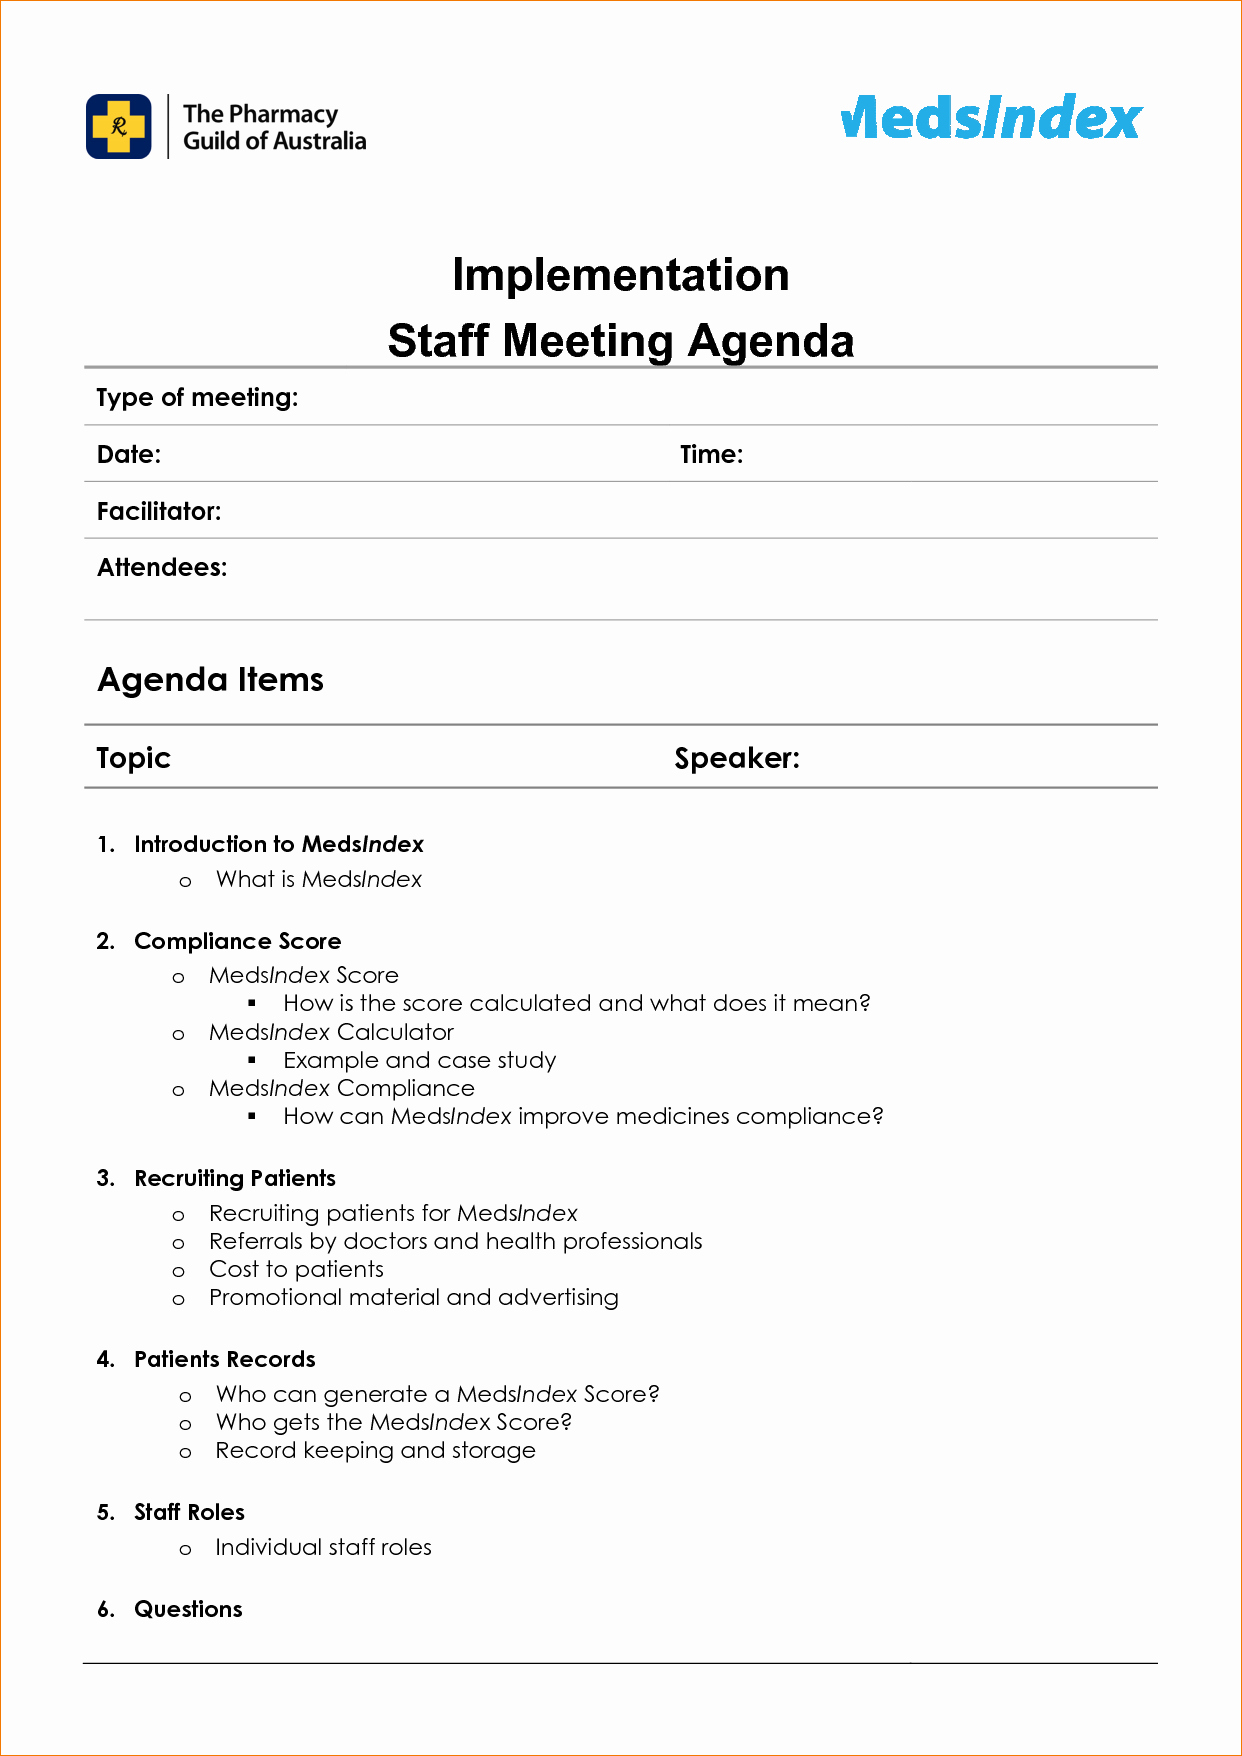 Staff Meeting Minutes Template Doc Luxury Staff Meeting Minutes Template Bing Images